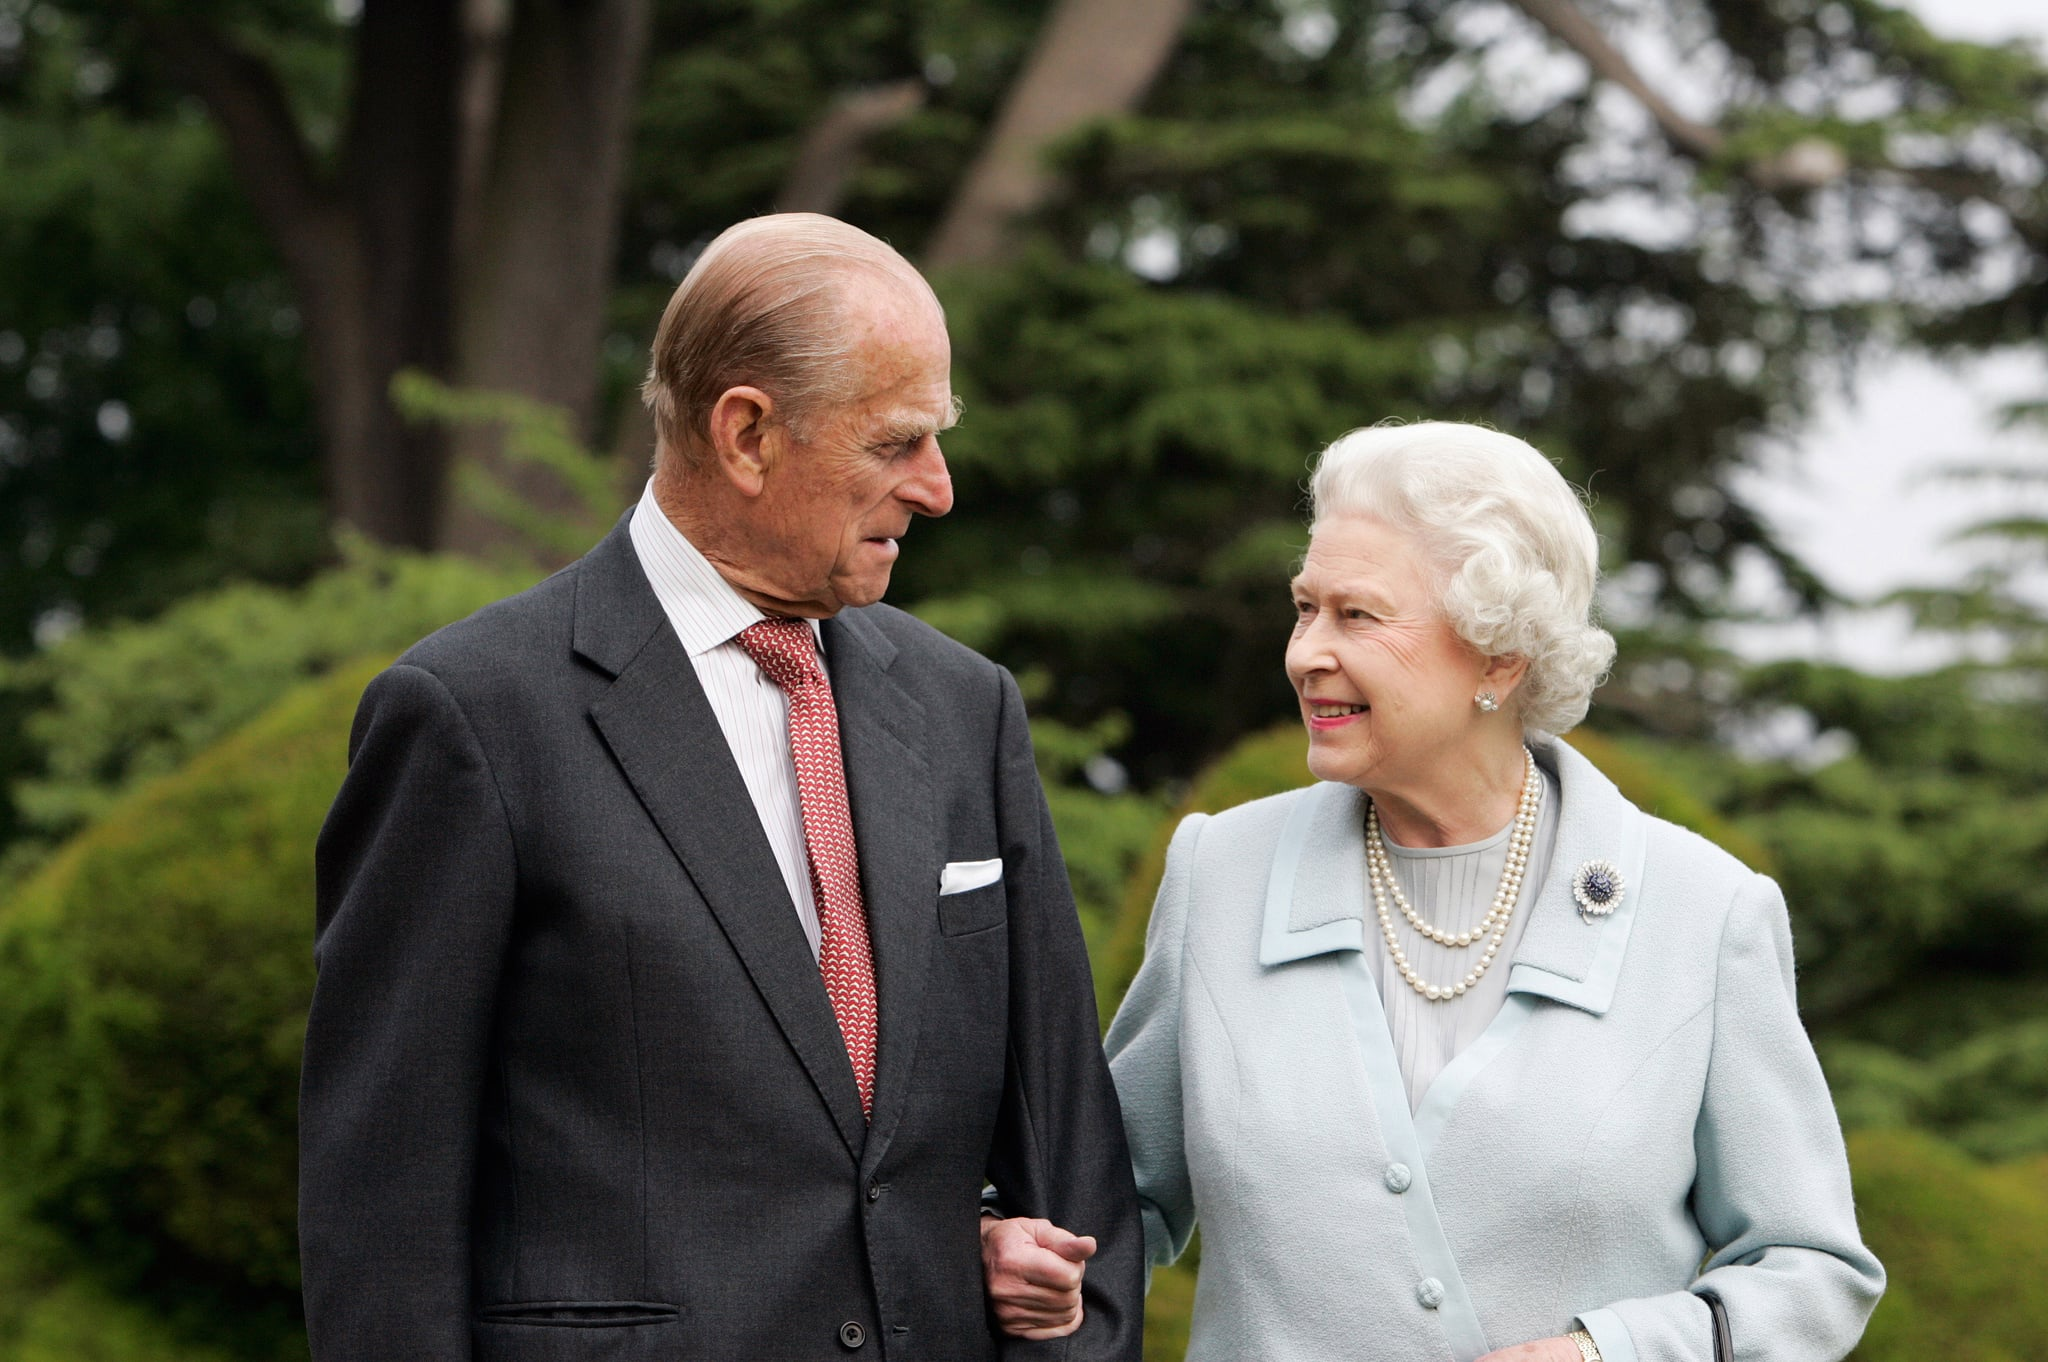 Queen Elizabeth Just Gave Prince Philip the Sweetest Anniversary Gift Queen Elizabeth Just Gave Prince Philip the Sweetest Anniversary Gift new pictures